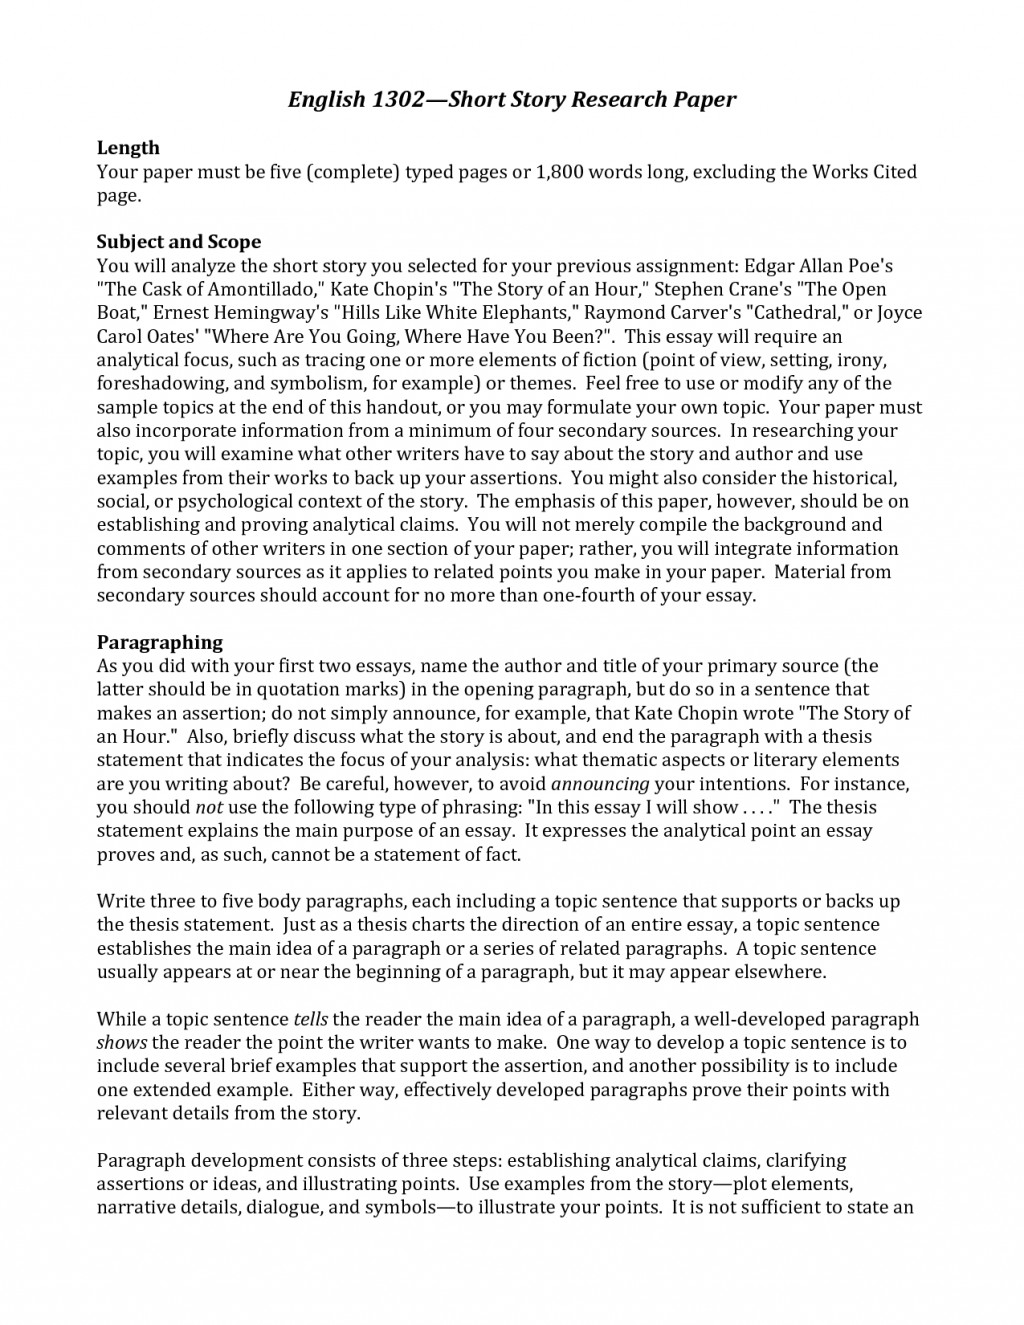 002 Ideas For Research Fascinating Paper Papers In Computer Science Middle School Large